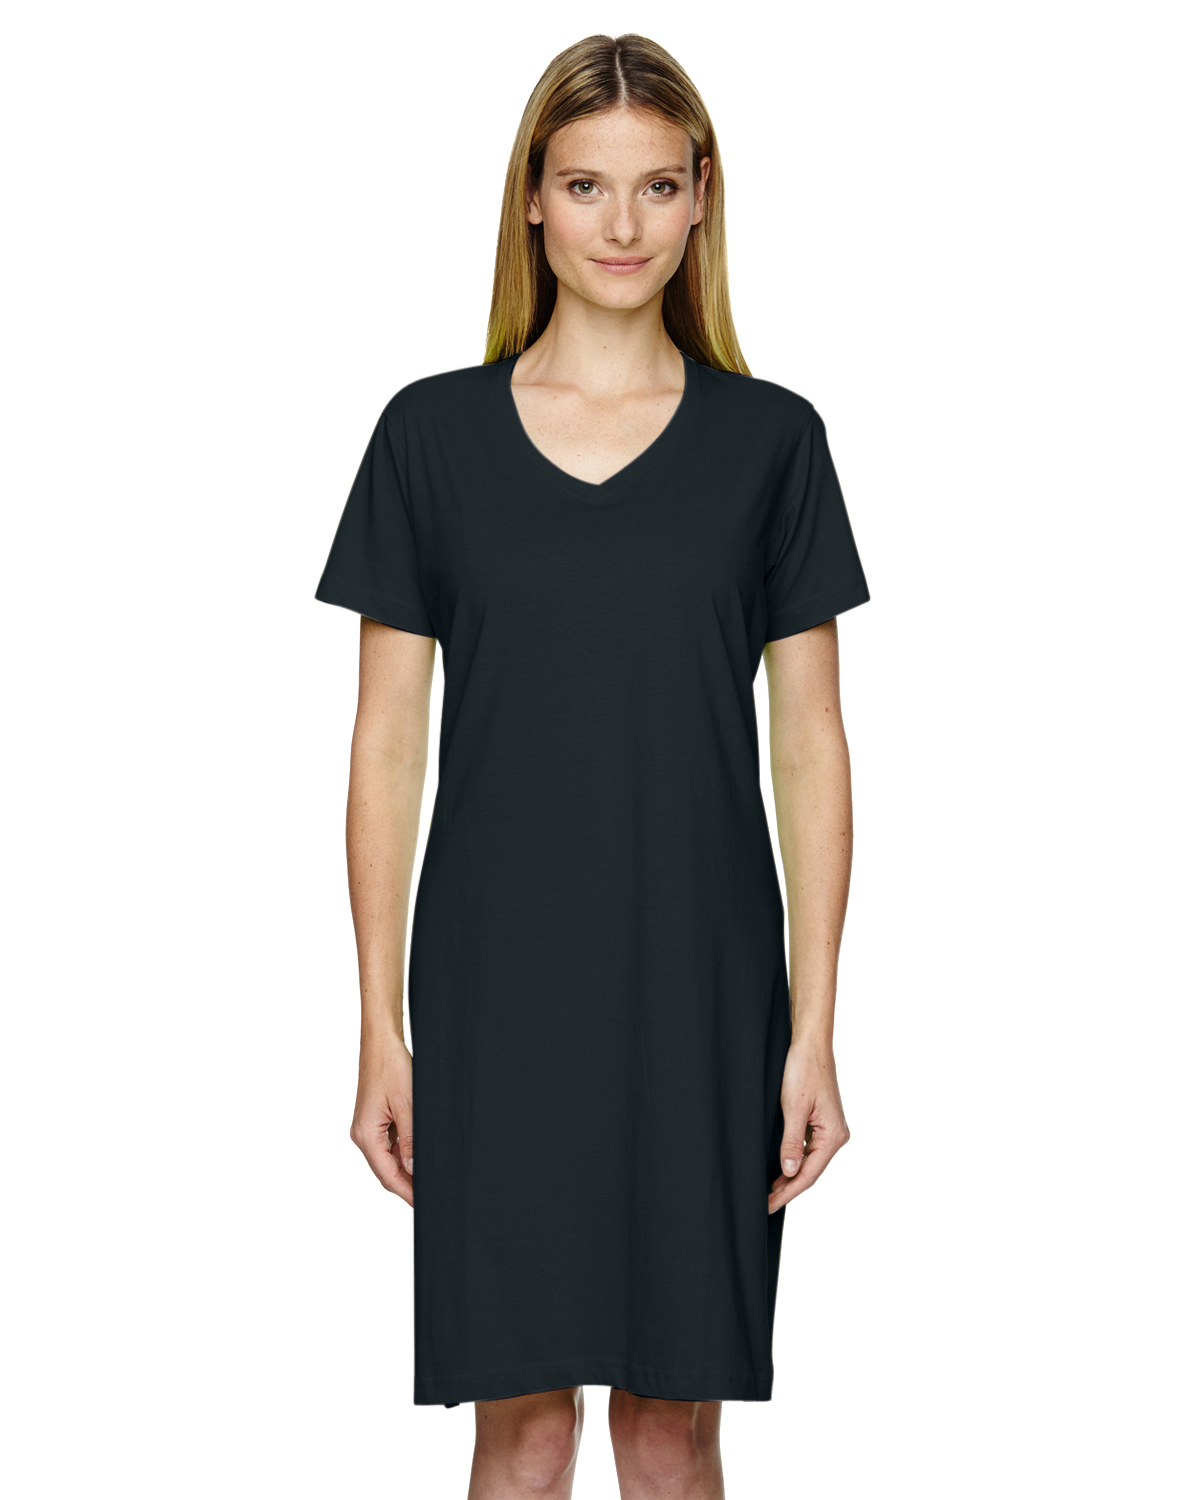 Black t shirt dress ebay - Lat Women 039 S 100 Cotton Short Sleeve